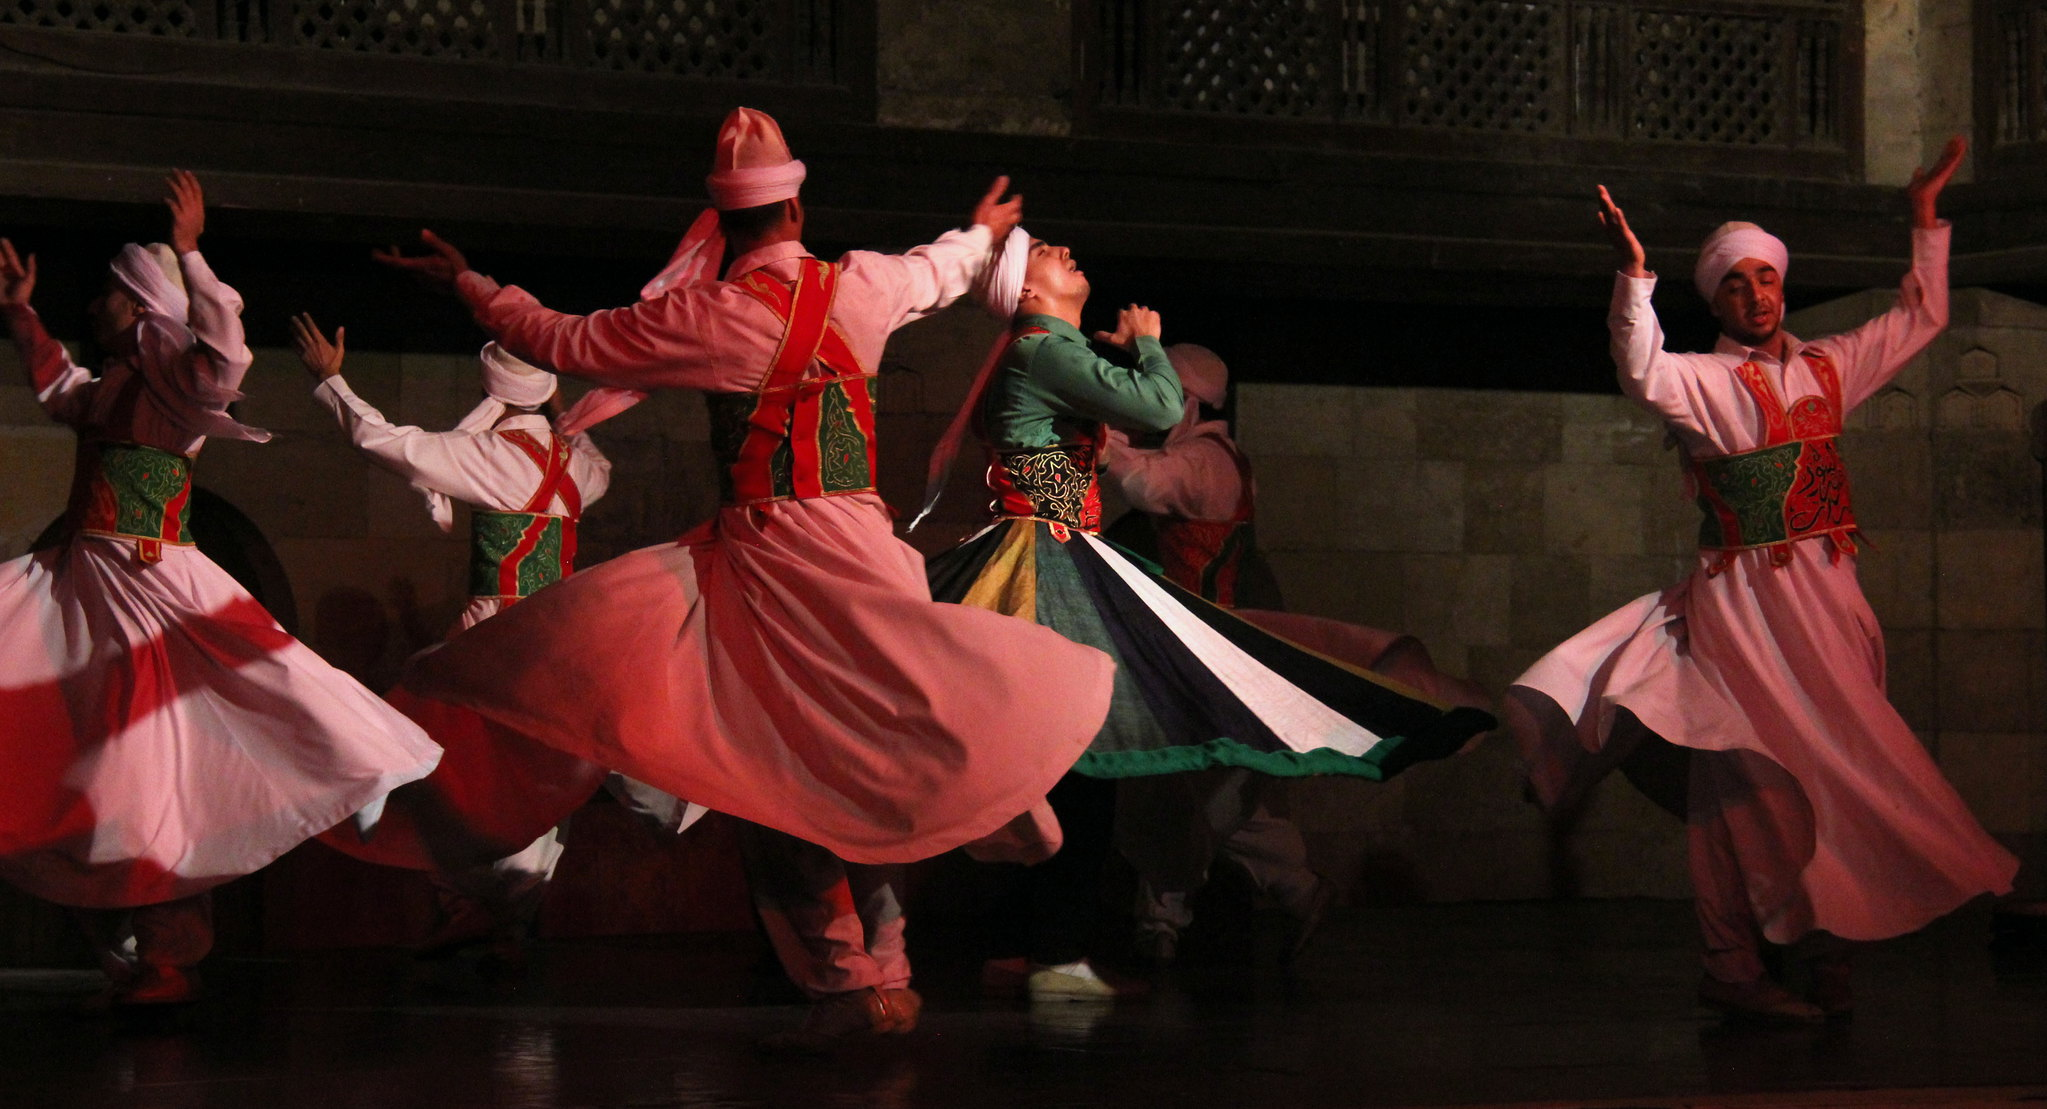 Tanoura dancers whirl in circles